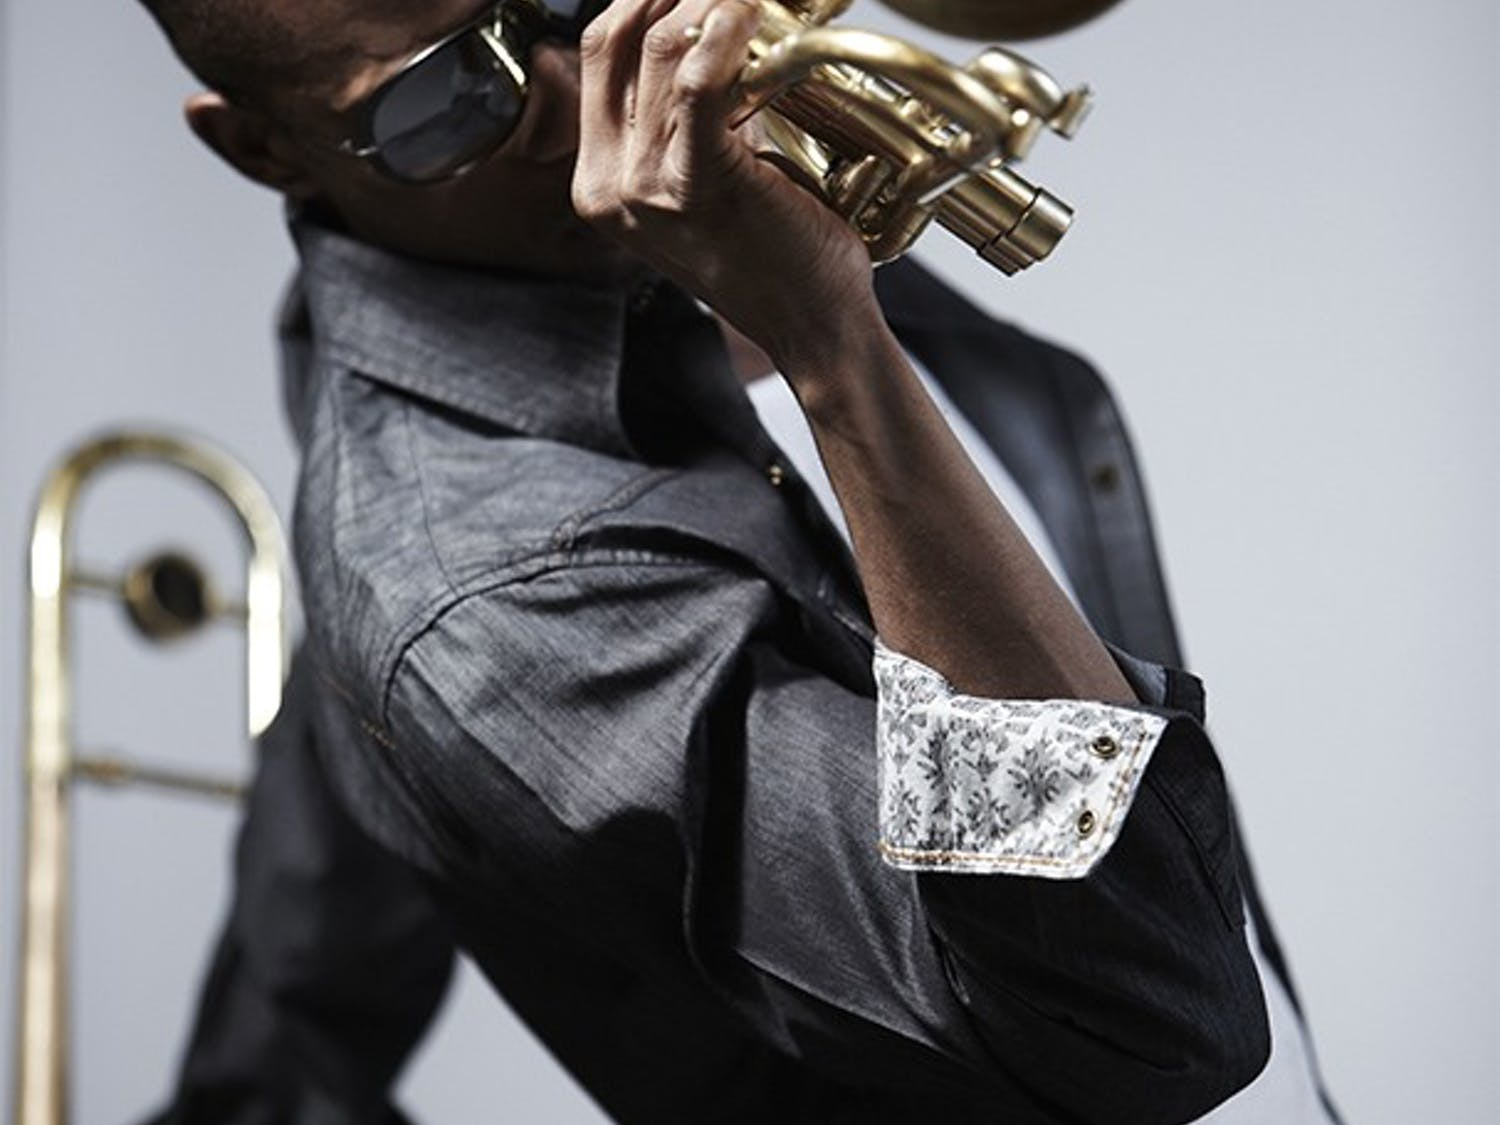 Trombone Shorty, a jazz-fusion musician from New Orleans, will perform at Memorial Hall Friday in a concert presented by Carolina Performing Arts. He will perform with his band, Orleans Avenue.     Photo courtesy of Kirk Edwards